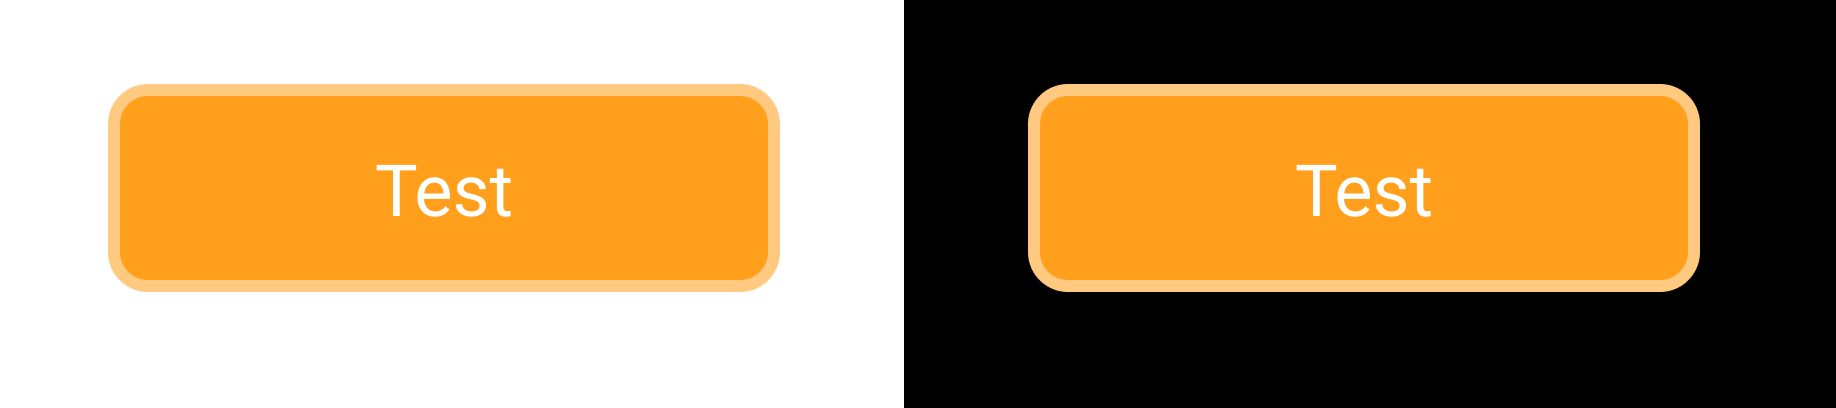 a button with a border shown on a white and black background, because opacity is not different the border has the same color